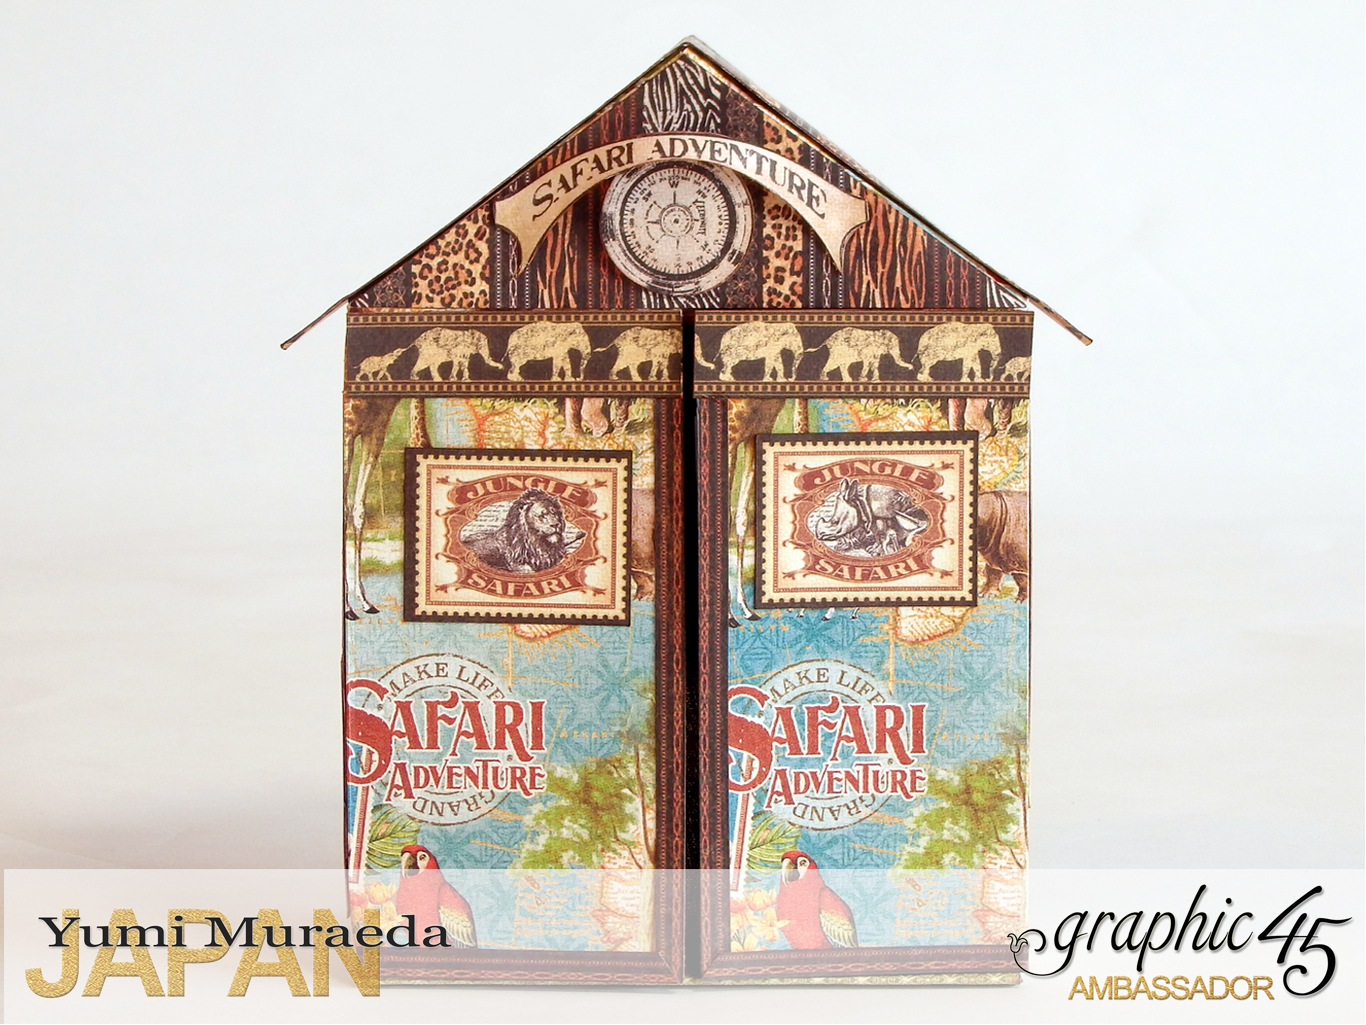 1Safari Park Ranger Office, Safari Adventure, by Yumi Muraeda, Product by Graphic 45jpg